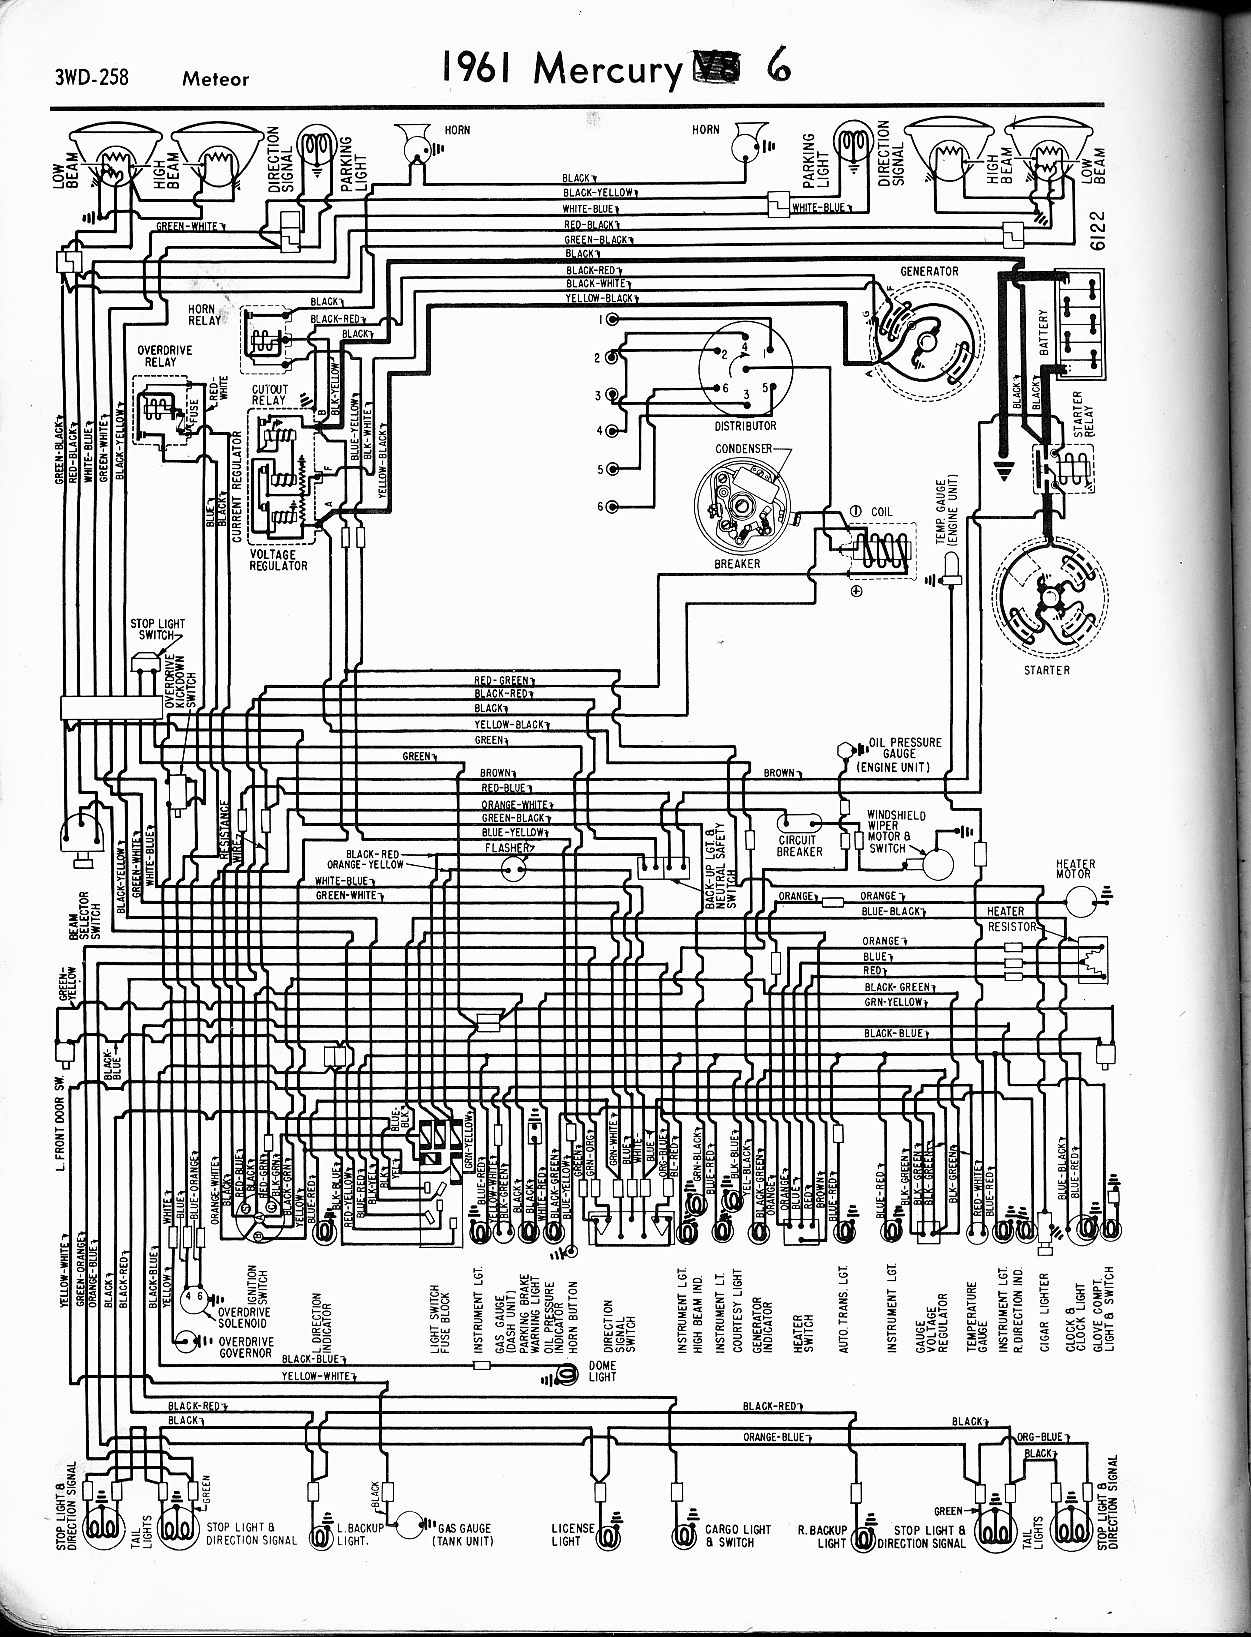 1955 Mercury Wiring Diagram Schematics Buick Diagrams The Old Car Manual Project Turn Signal